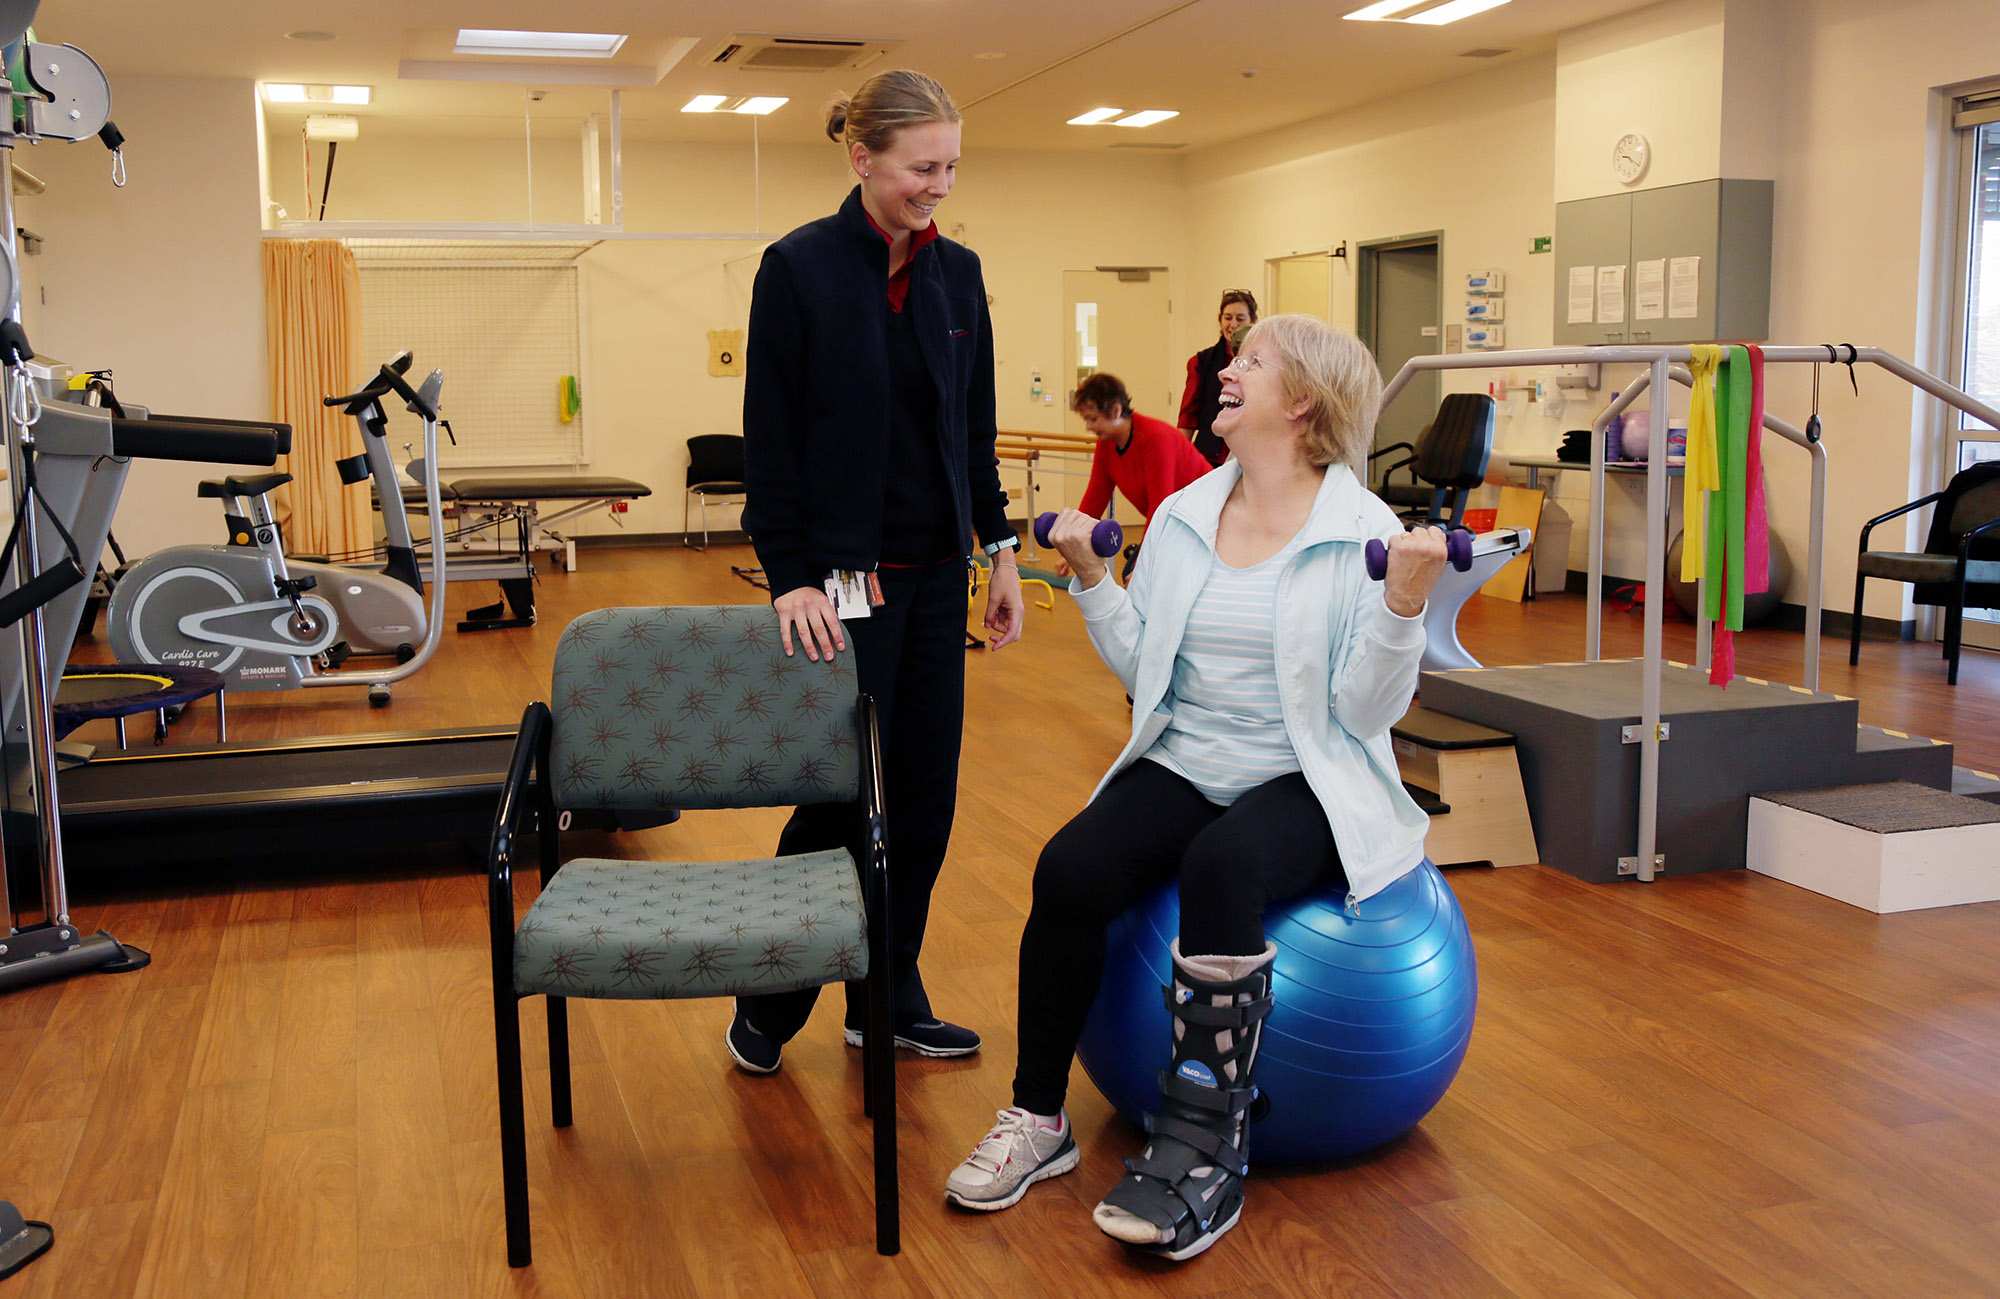 Exercise Physiologist supports a patient in the her rehabilitation. Patient seated on an exercise ball using hand weights.